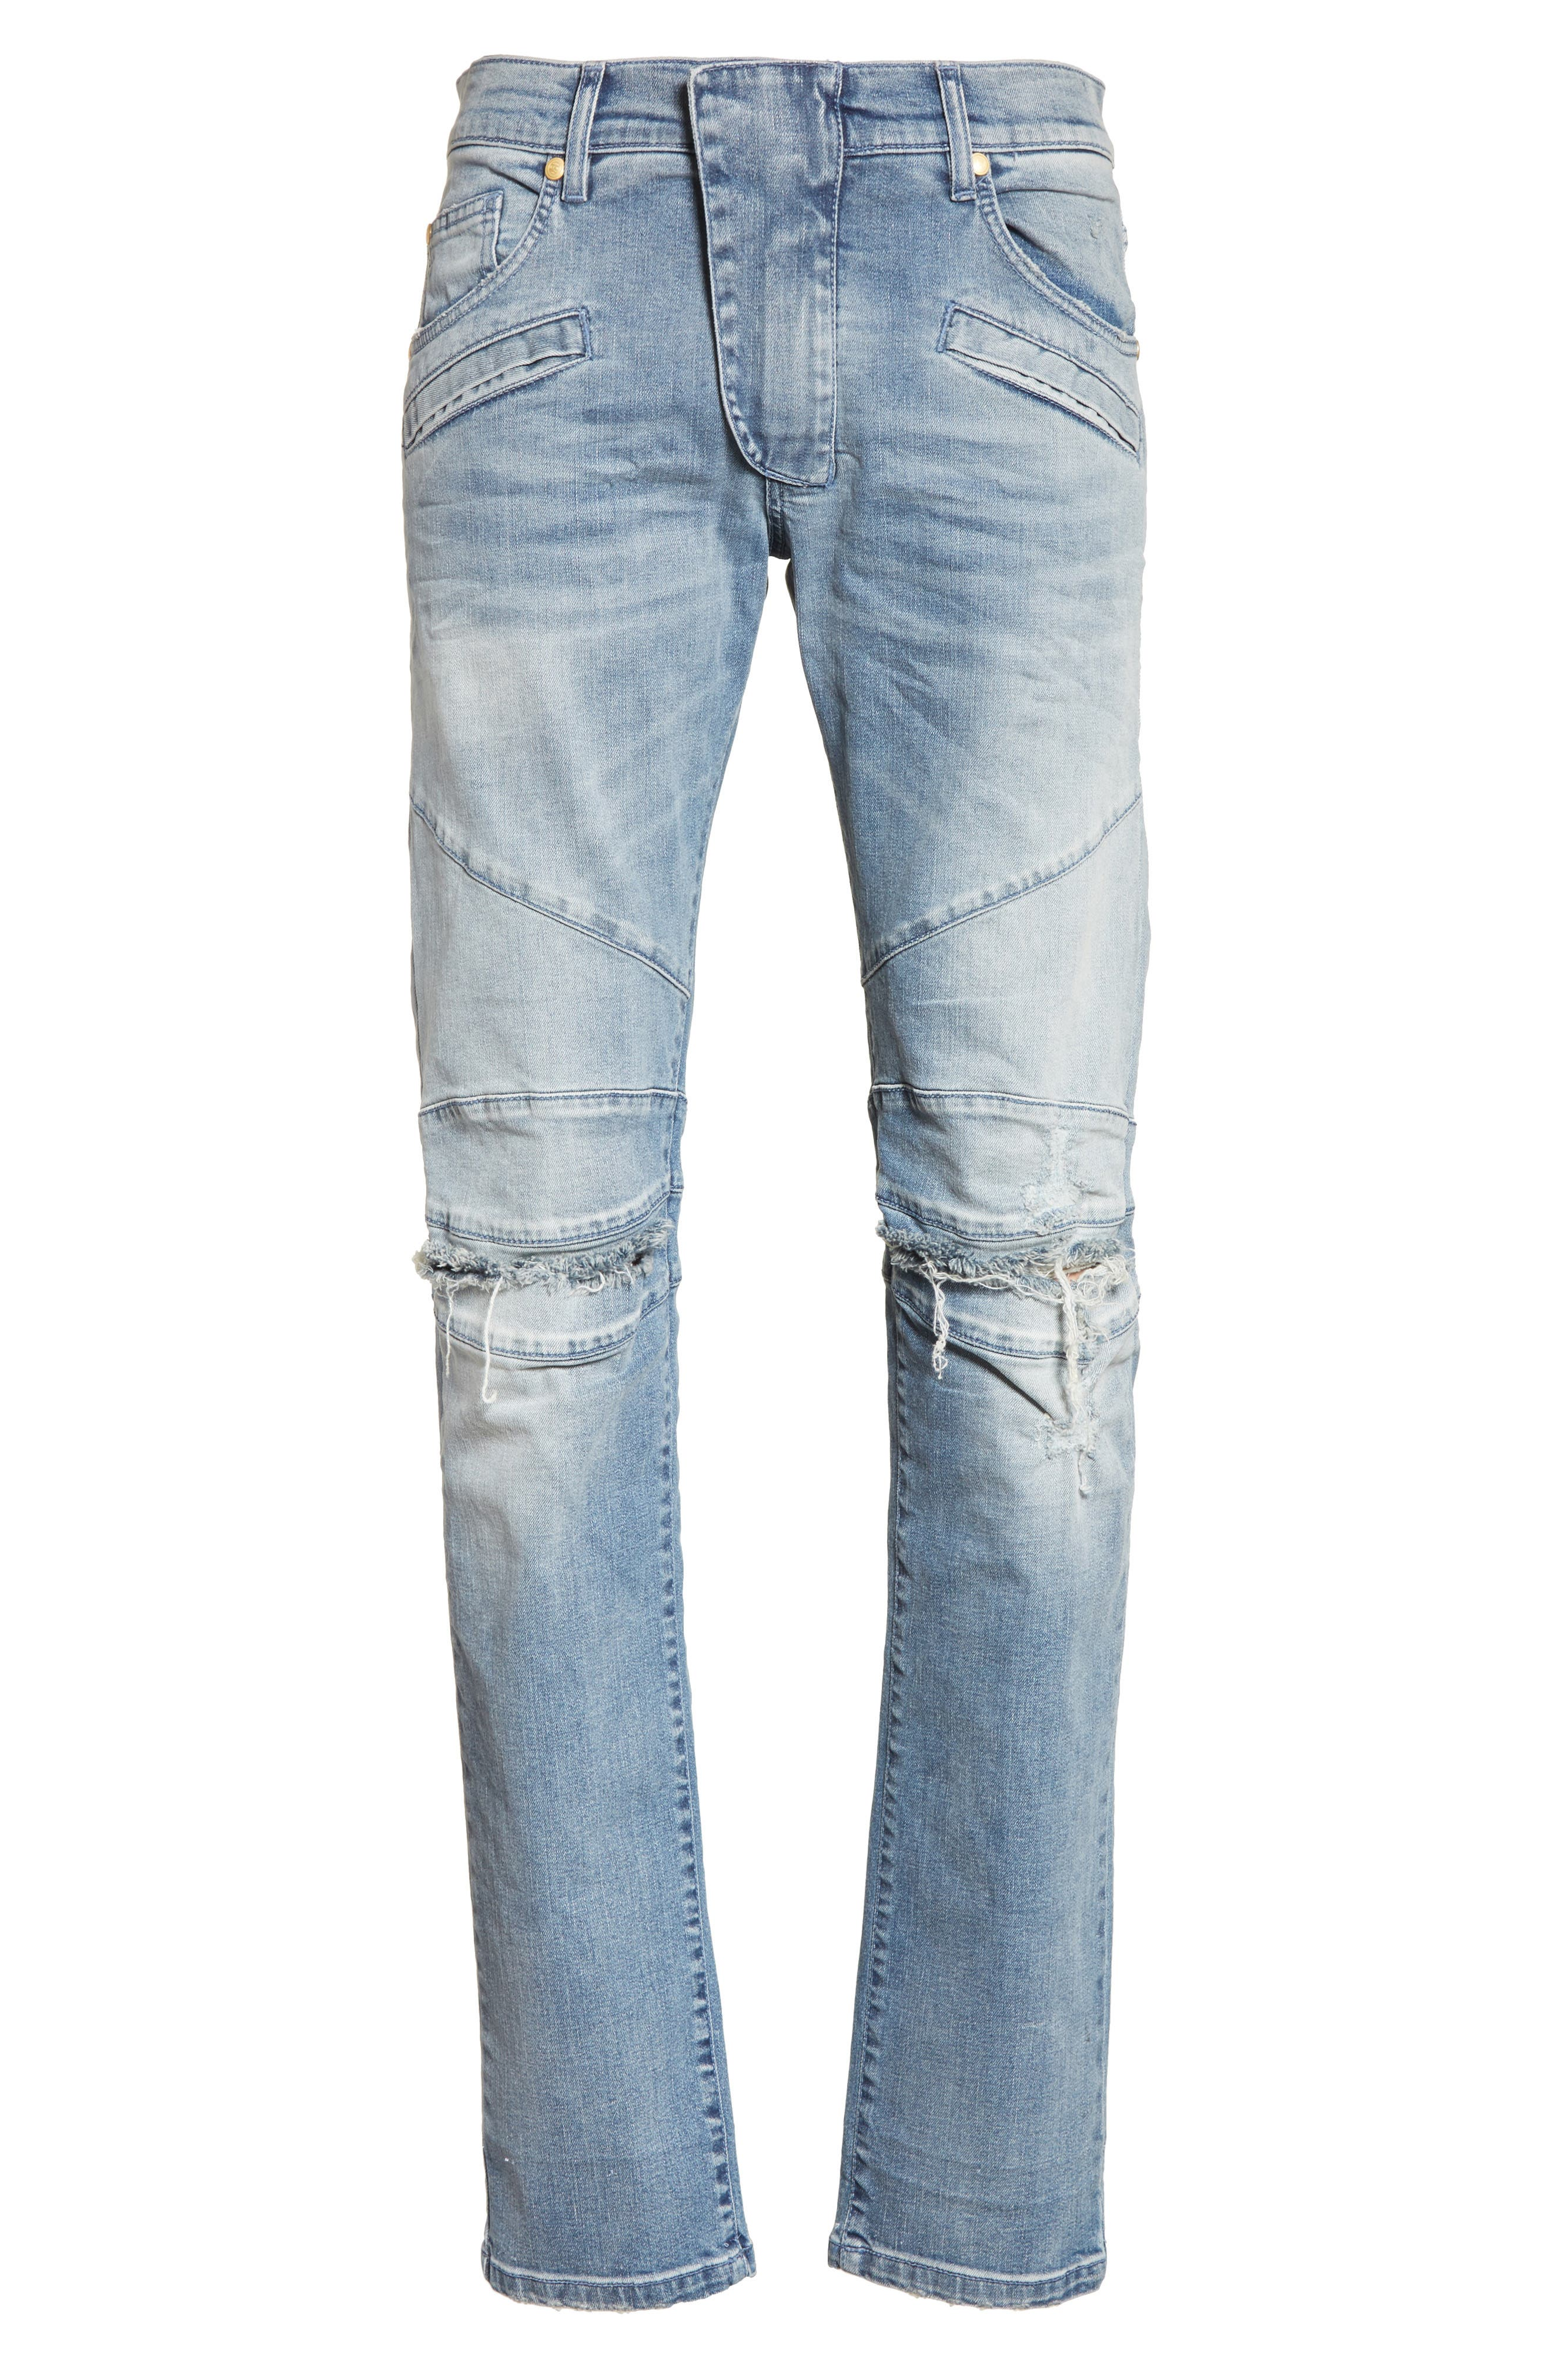 Slit Knee Jeans,                             Alternate thumbnail 6, color,                             Blue Denim